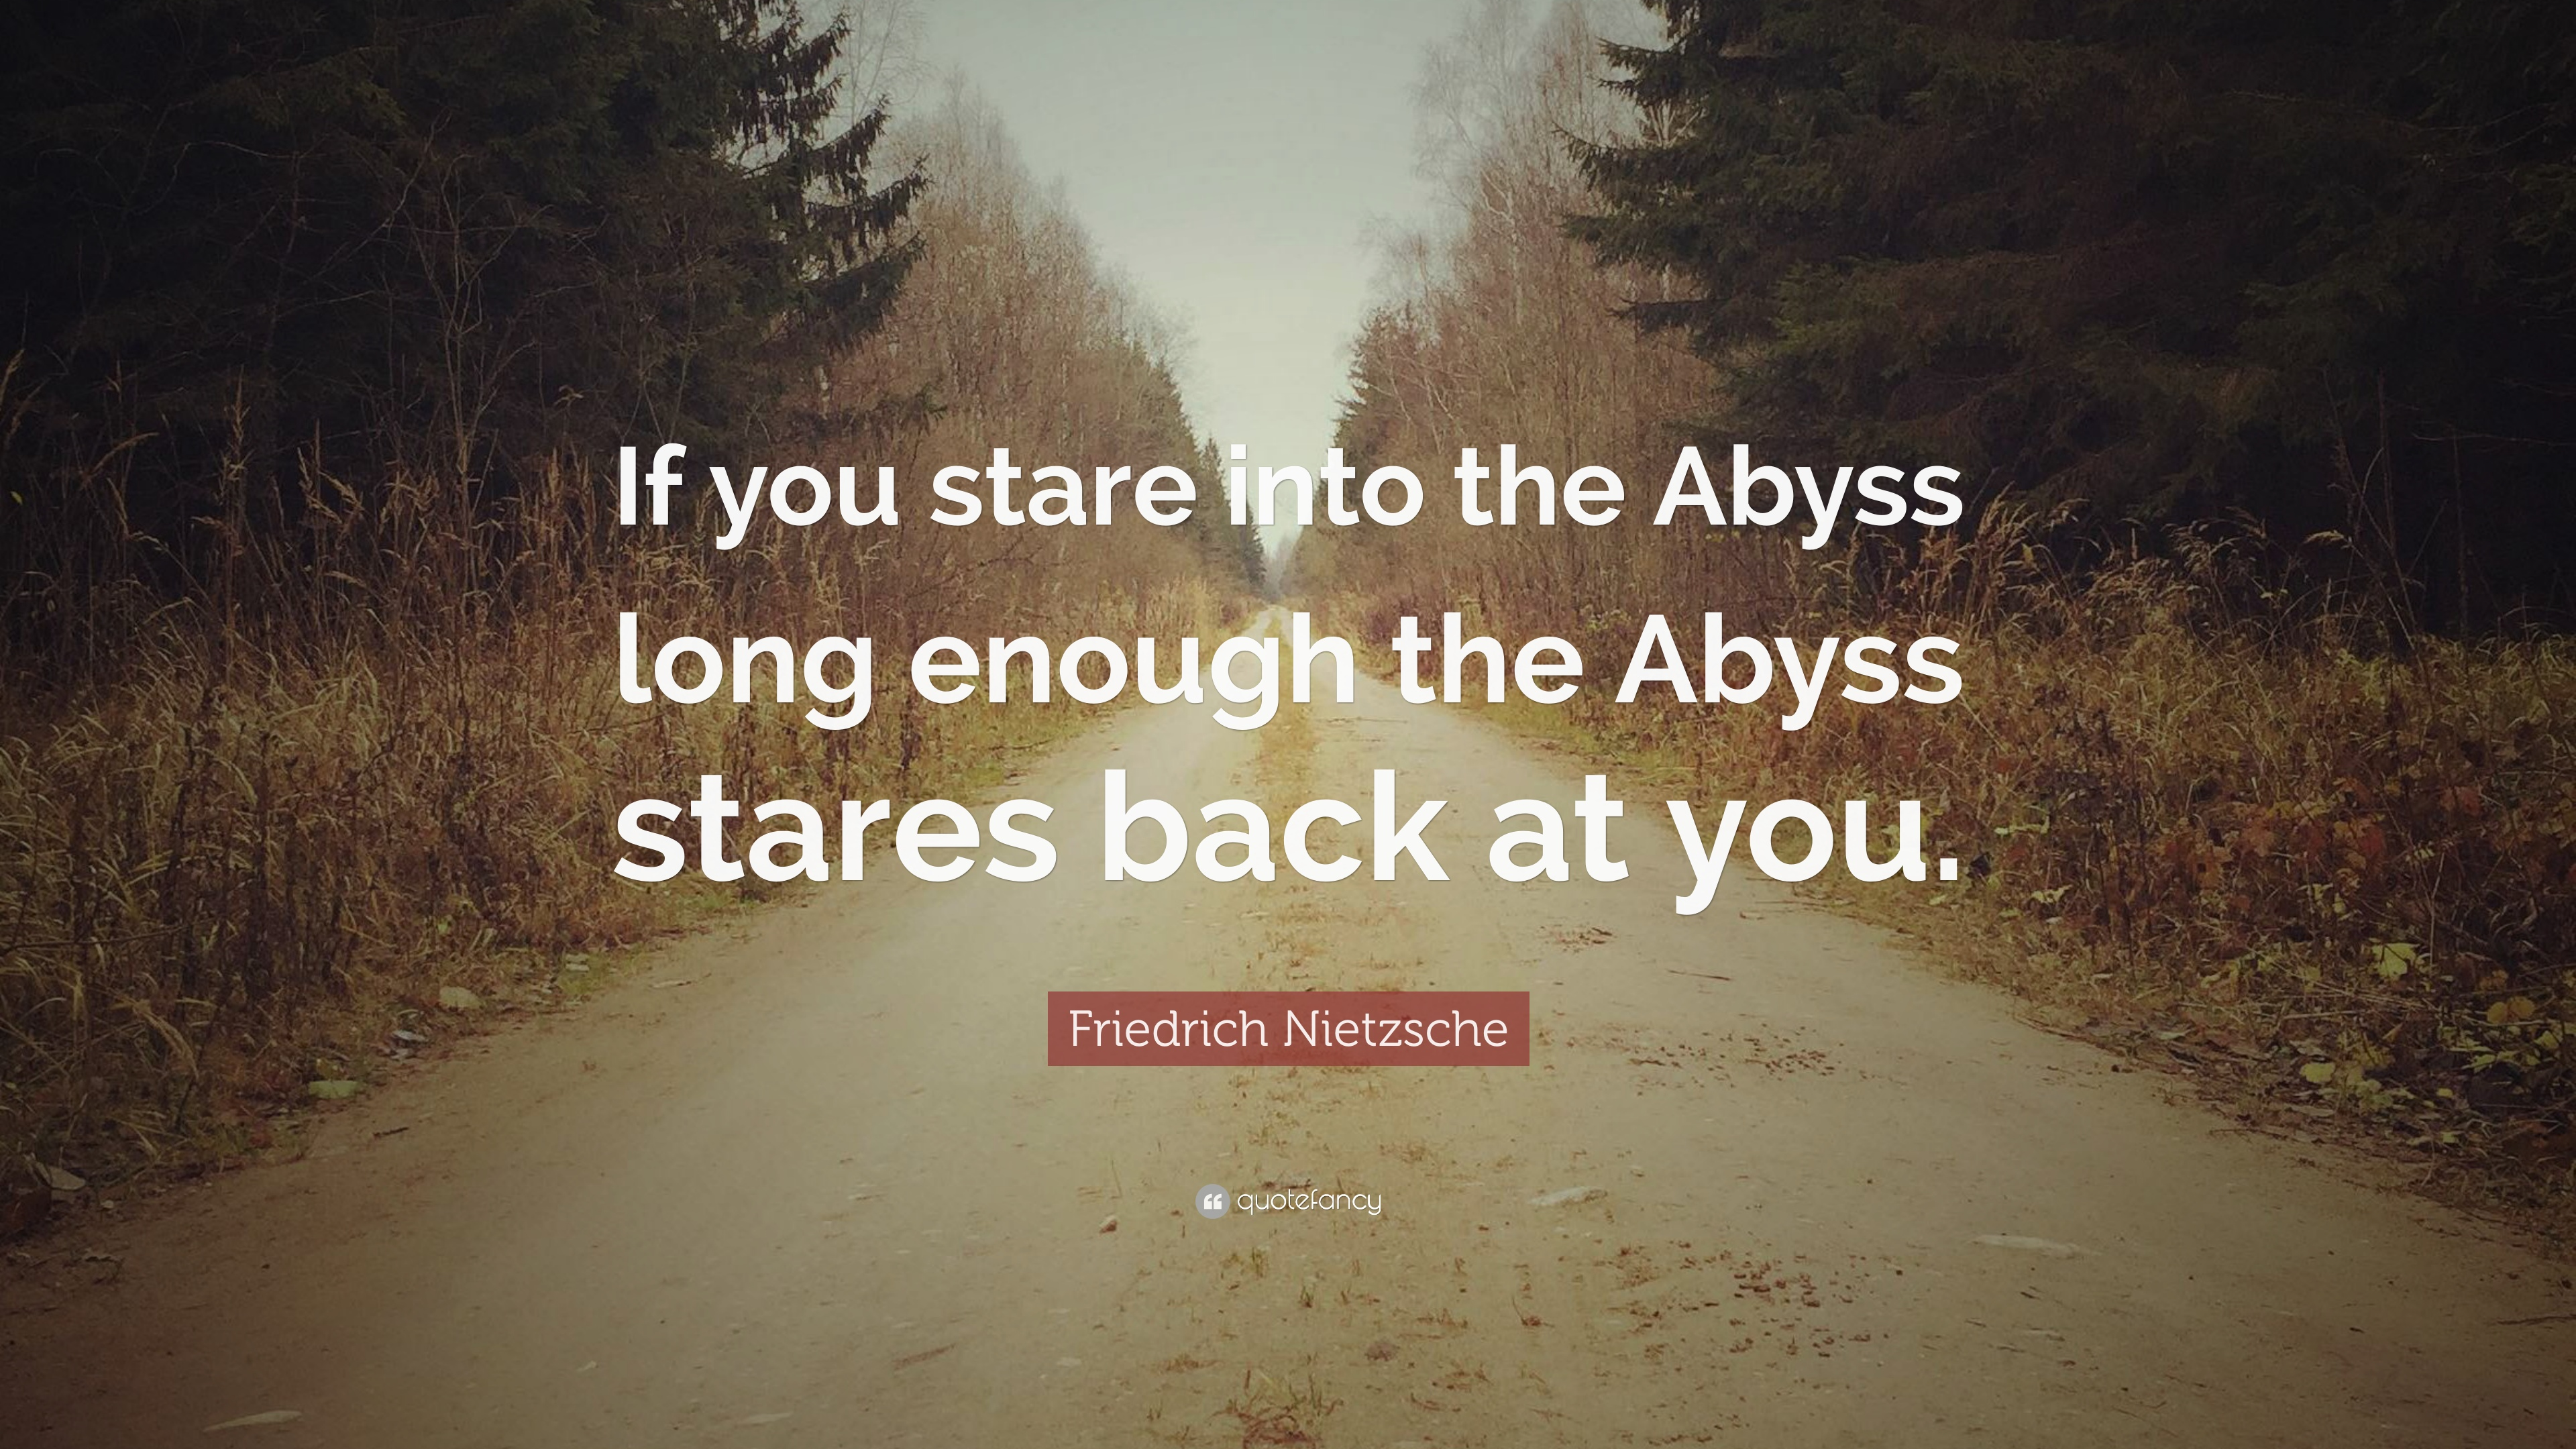 when you stare into the abyss quote